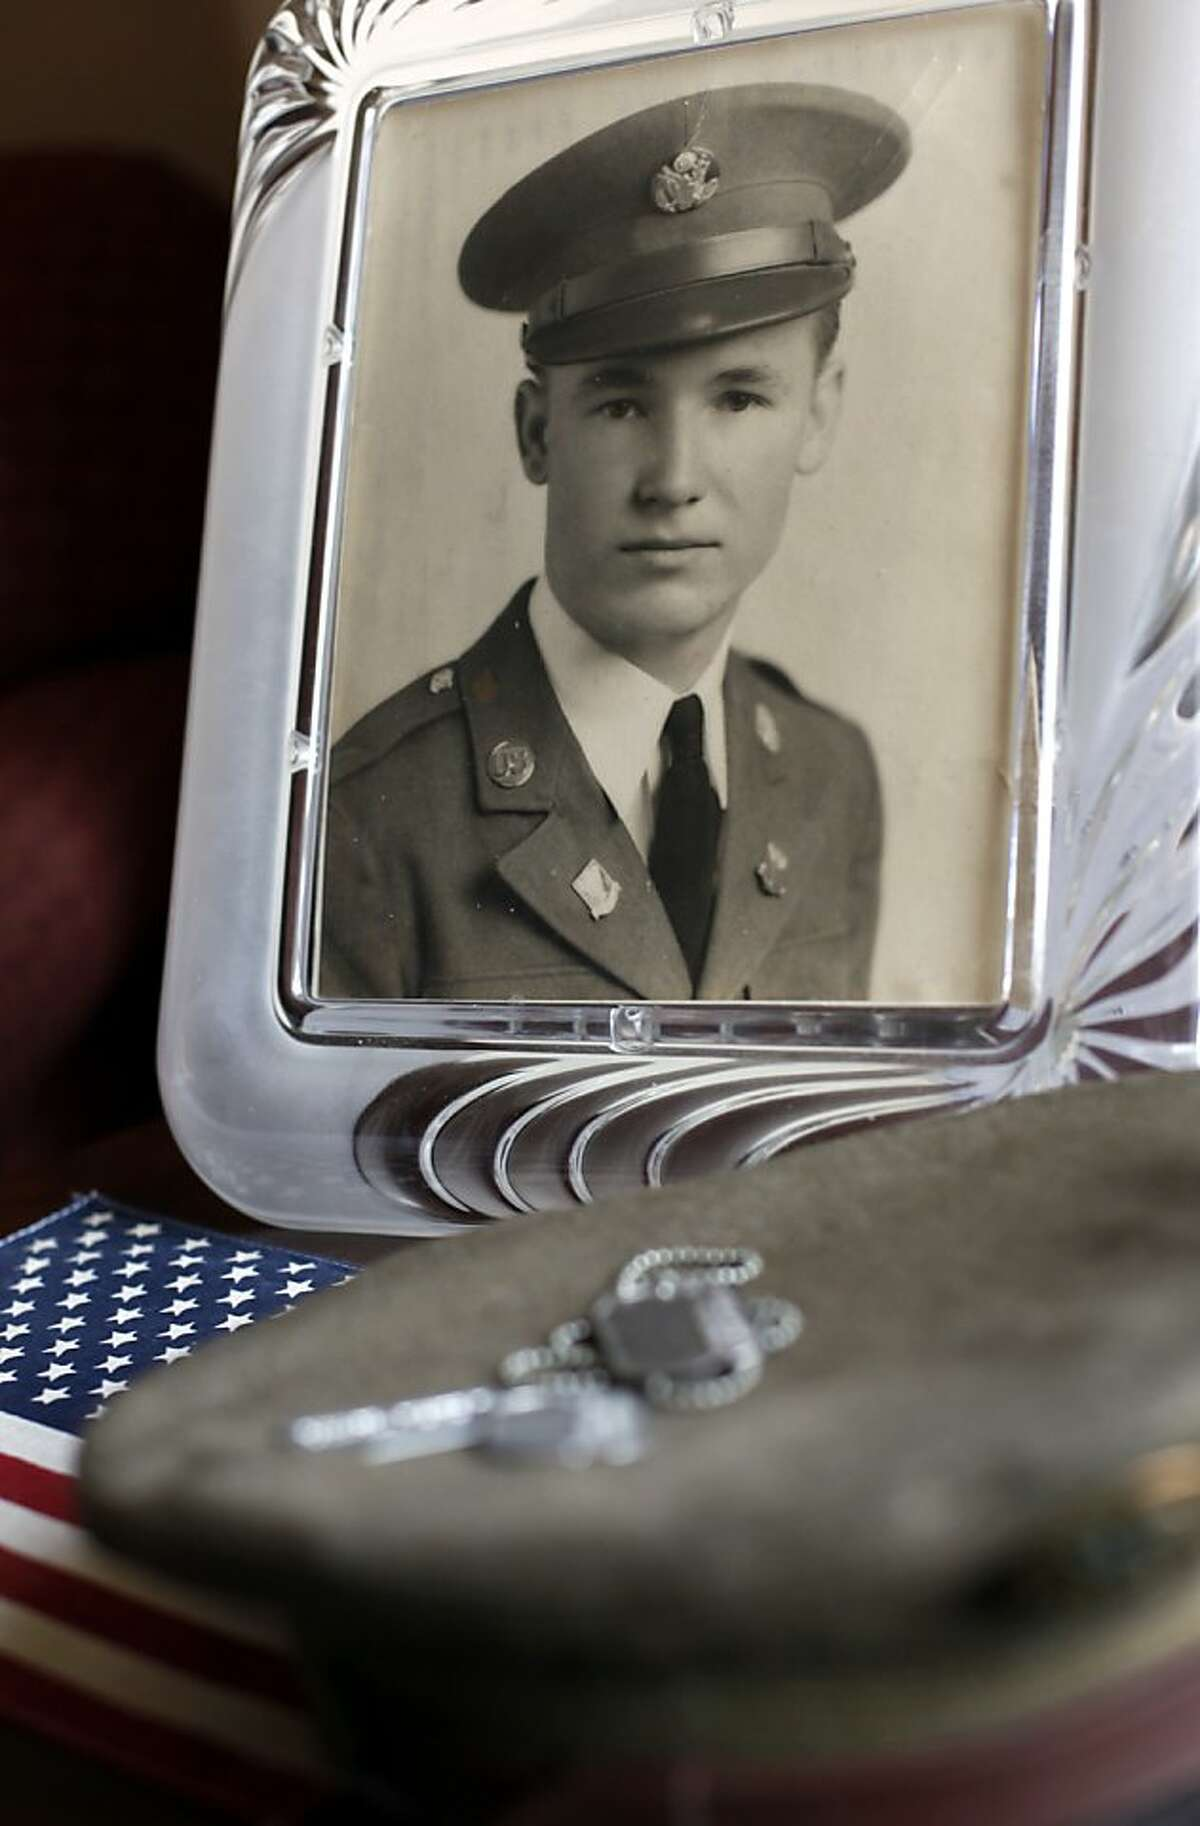 A photo, dog tags and the hat belonging to Elbert Pollard are shown in San Francisco, Calif. Thursday, May 24, 2012. Pollard was a 28-year-old Air Force gunner in 1950 when he died parachuting out of a B-36. His remains were finally identified by DNA this year, and Friday they will be laid to rest in the Presidio.